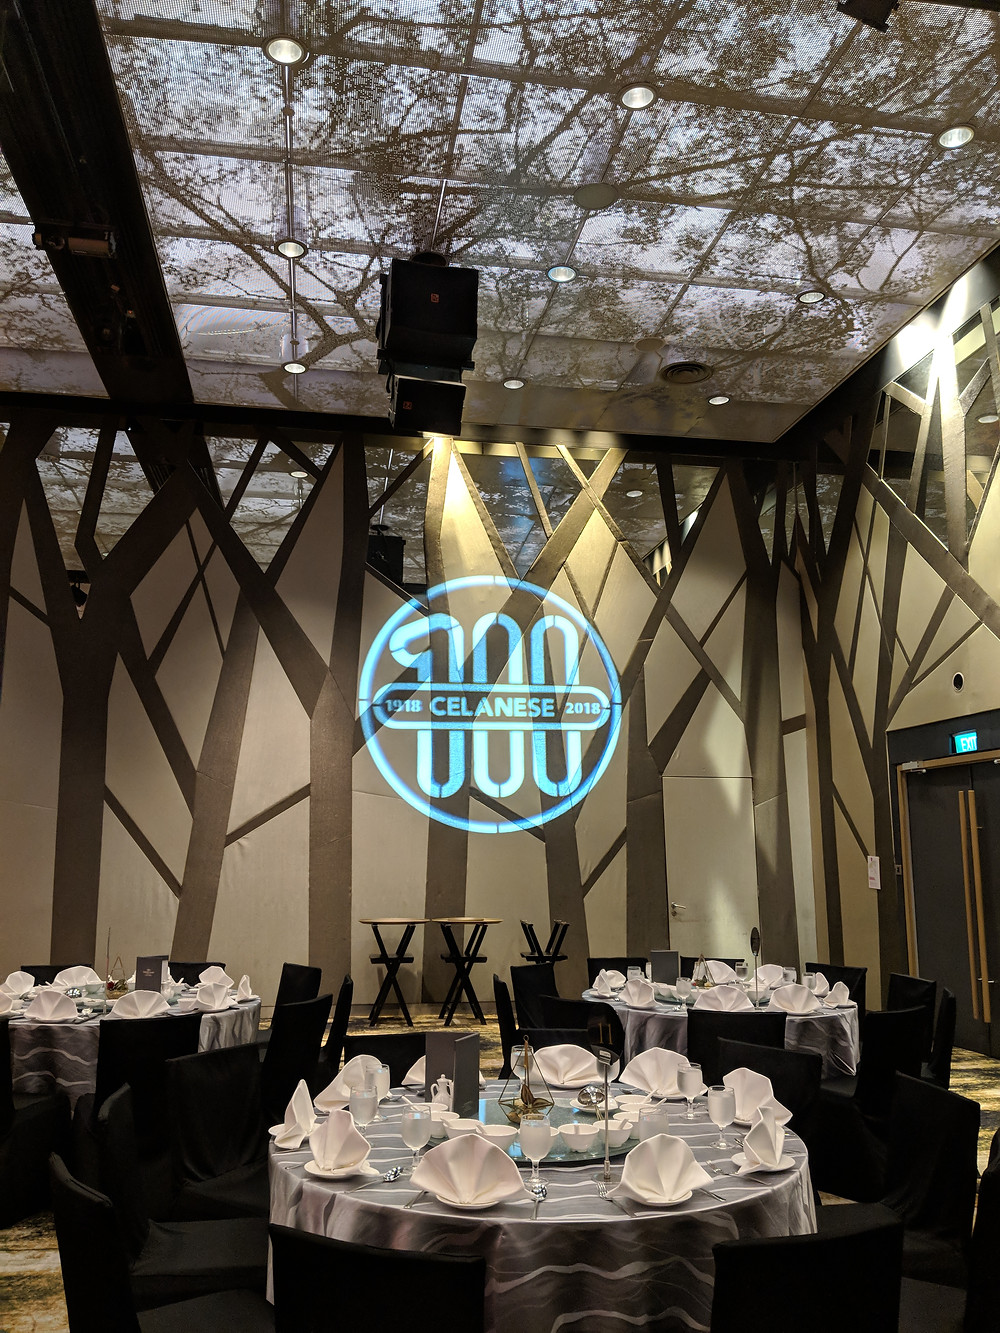 Emcee Singapore - Ainsley Chong, Celanese 100th Anniversary Dinner & Dance 2018